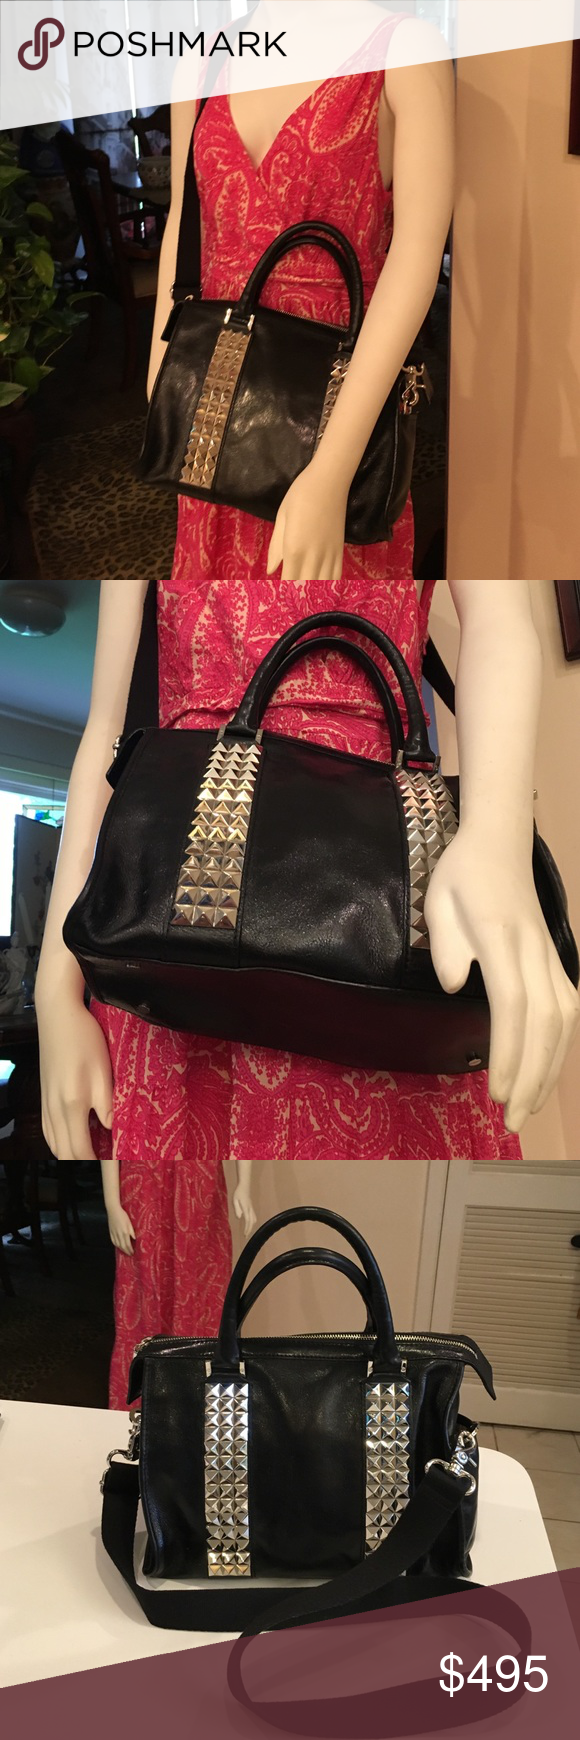 Tory Burch Black Leather with silver studs !! Comes with strap silver feet on bottom silver design on both sides this is a beautyin perfect shape hardly used selling for a family member great size holds a lot reasonable offers only!! Tory Burch Bags Satchels